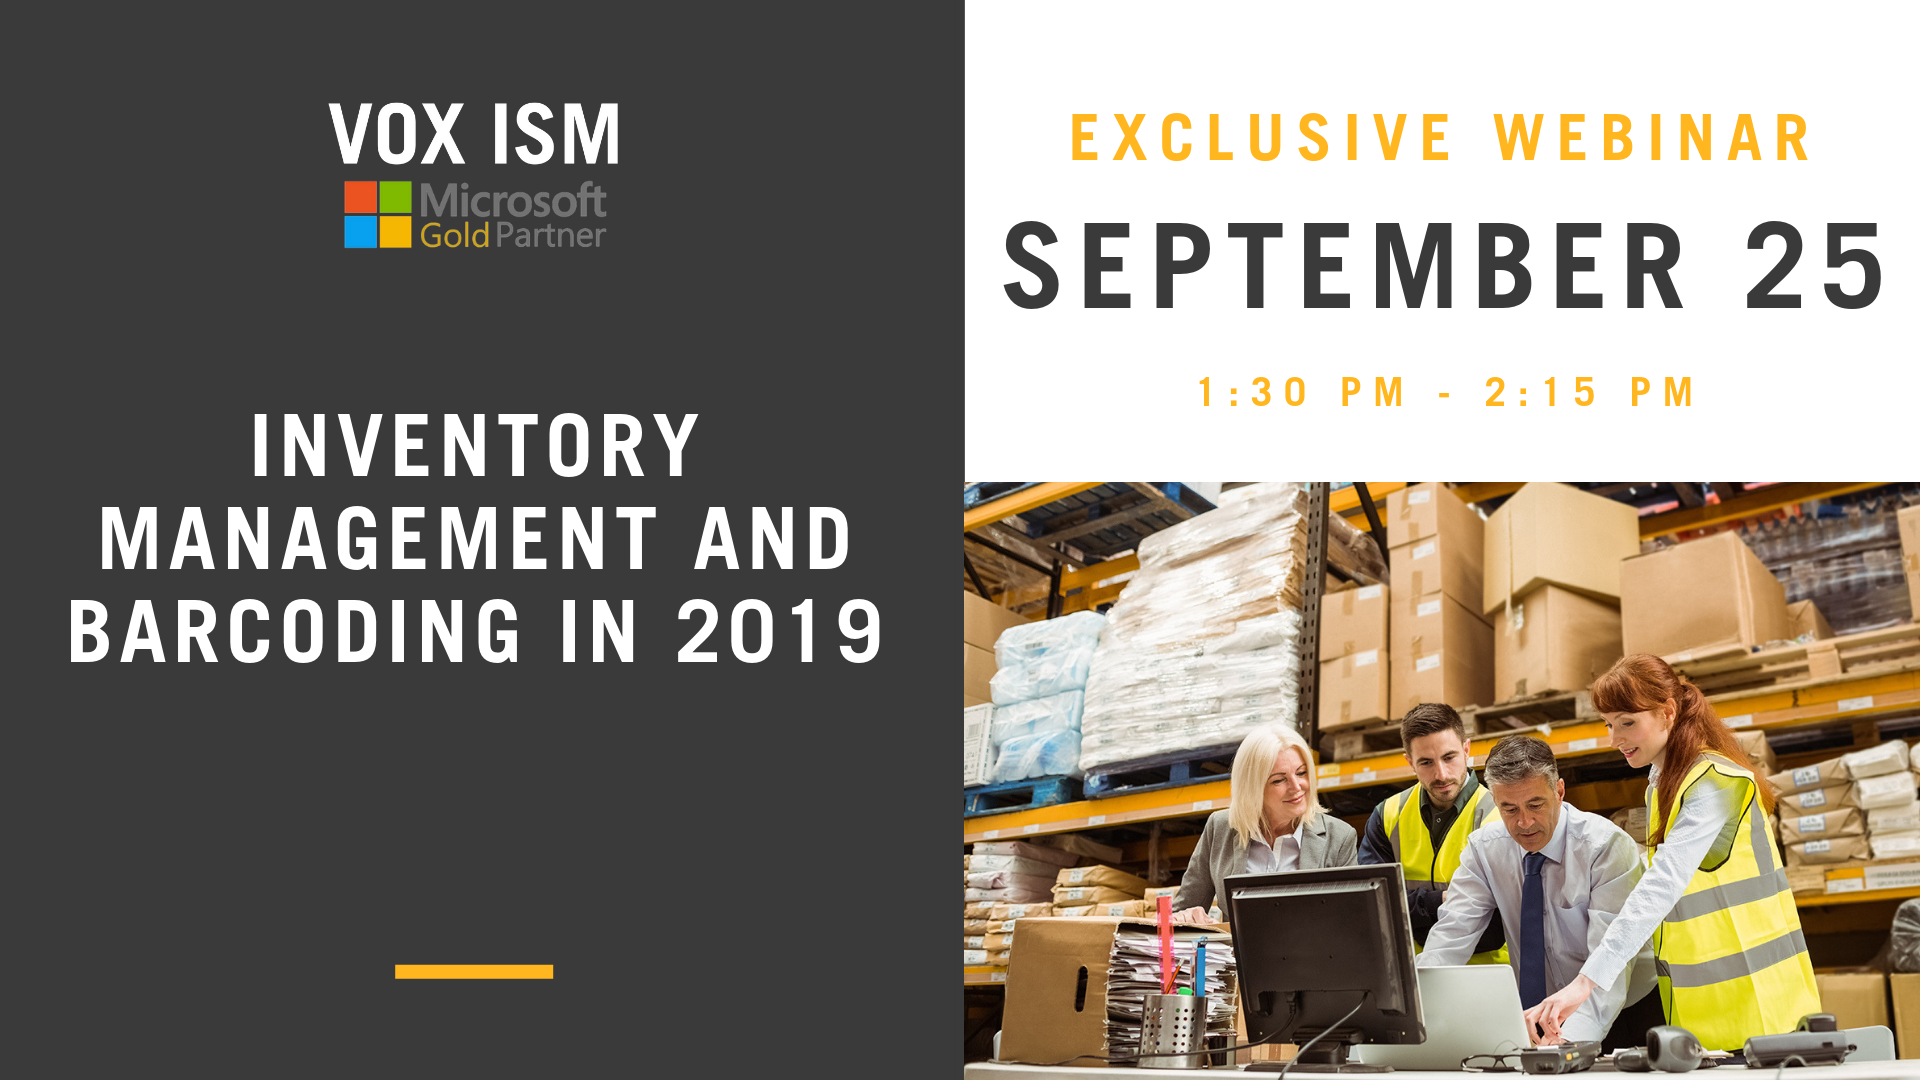 Inventory Management and Barcoding in 2019 - September 25 - Webinar - VOX ISM